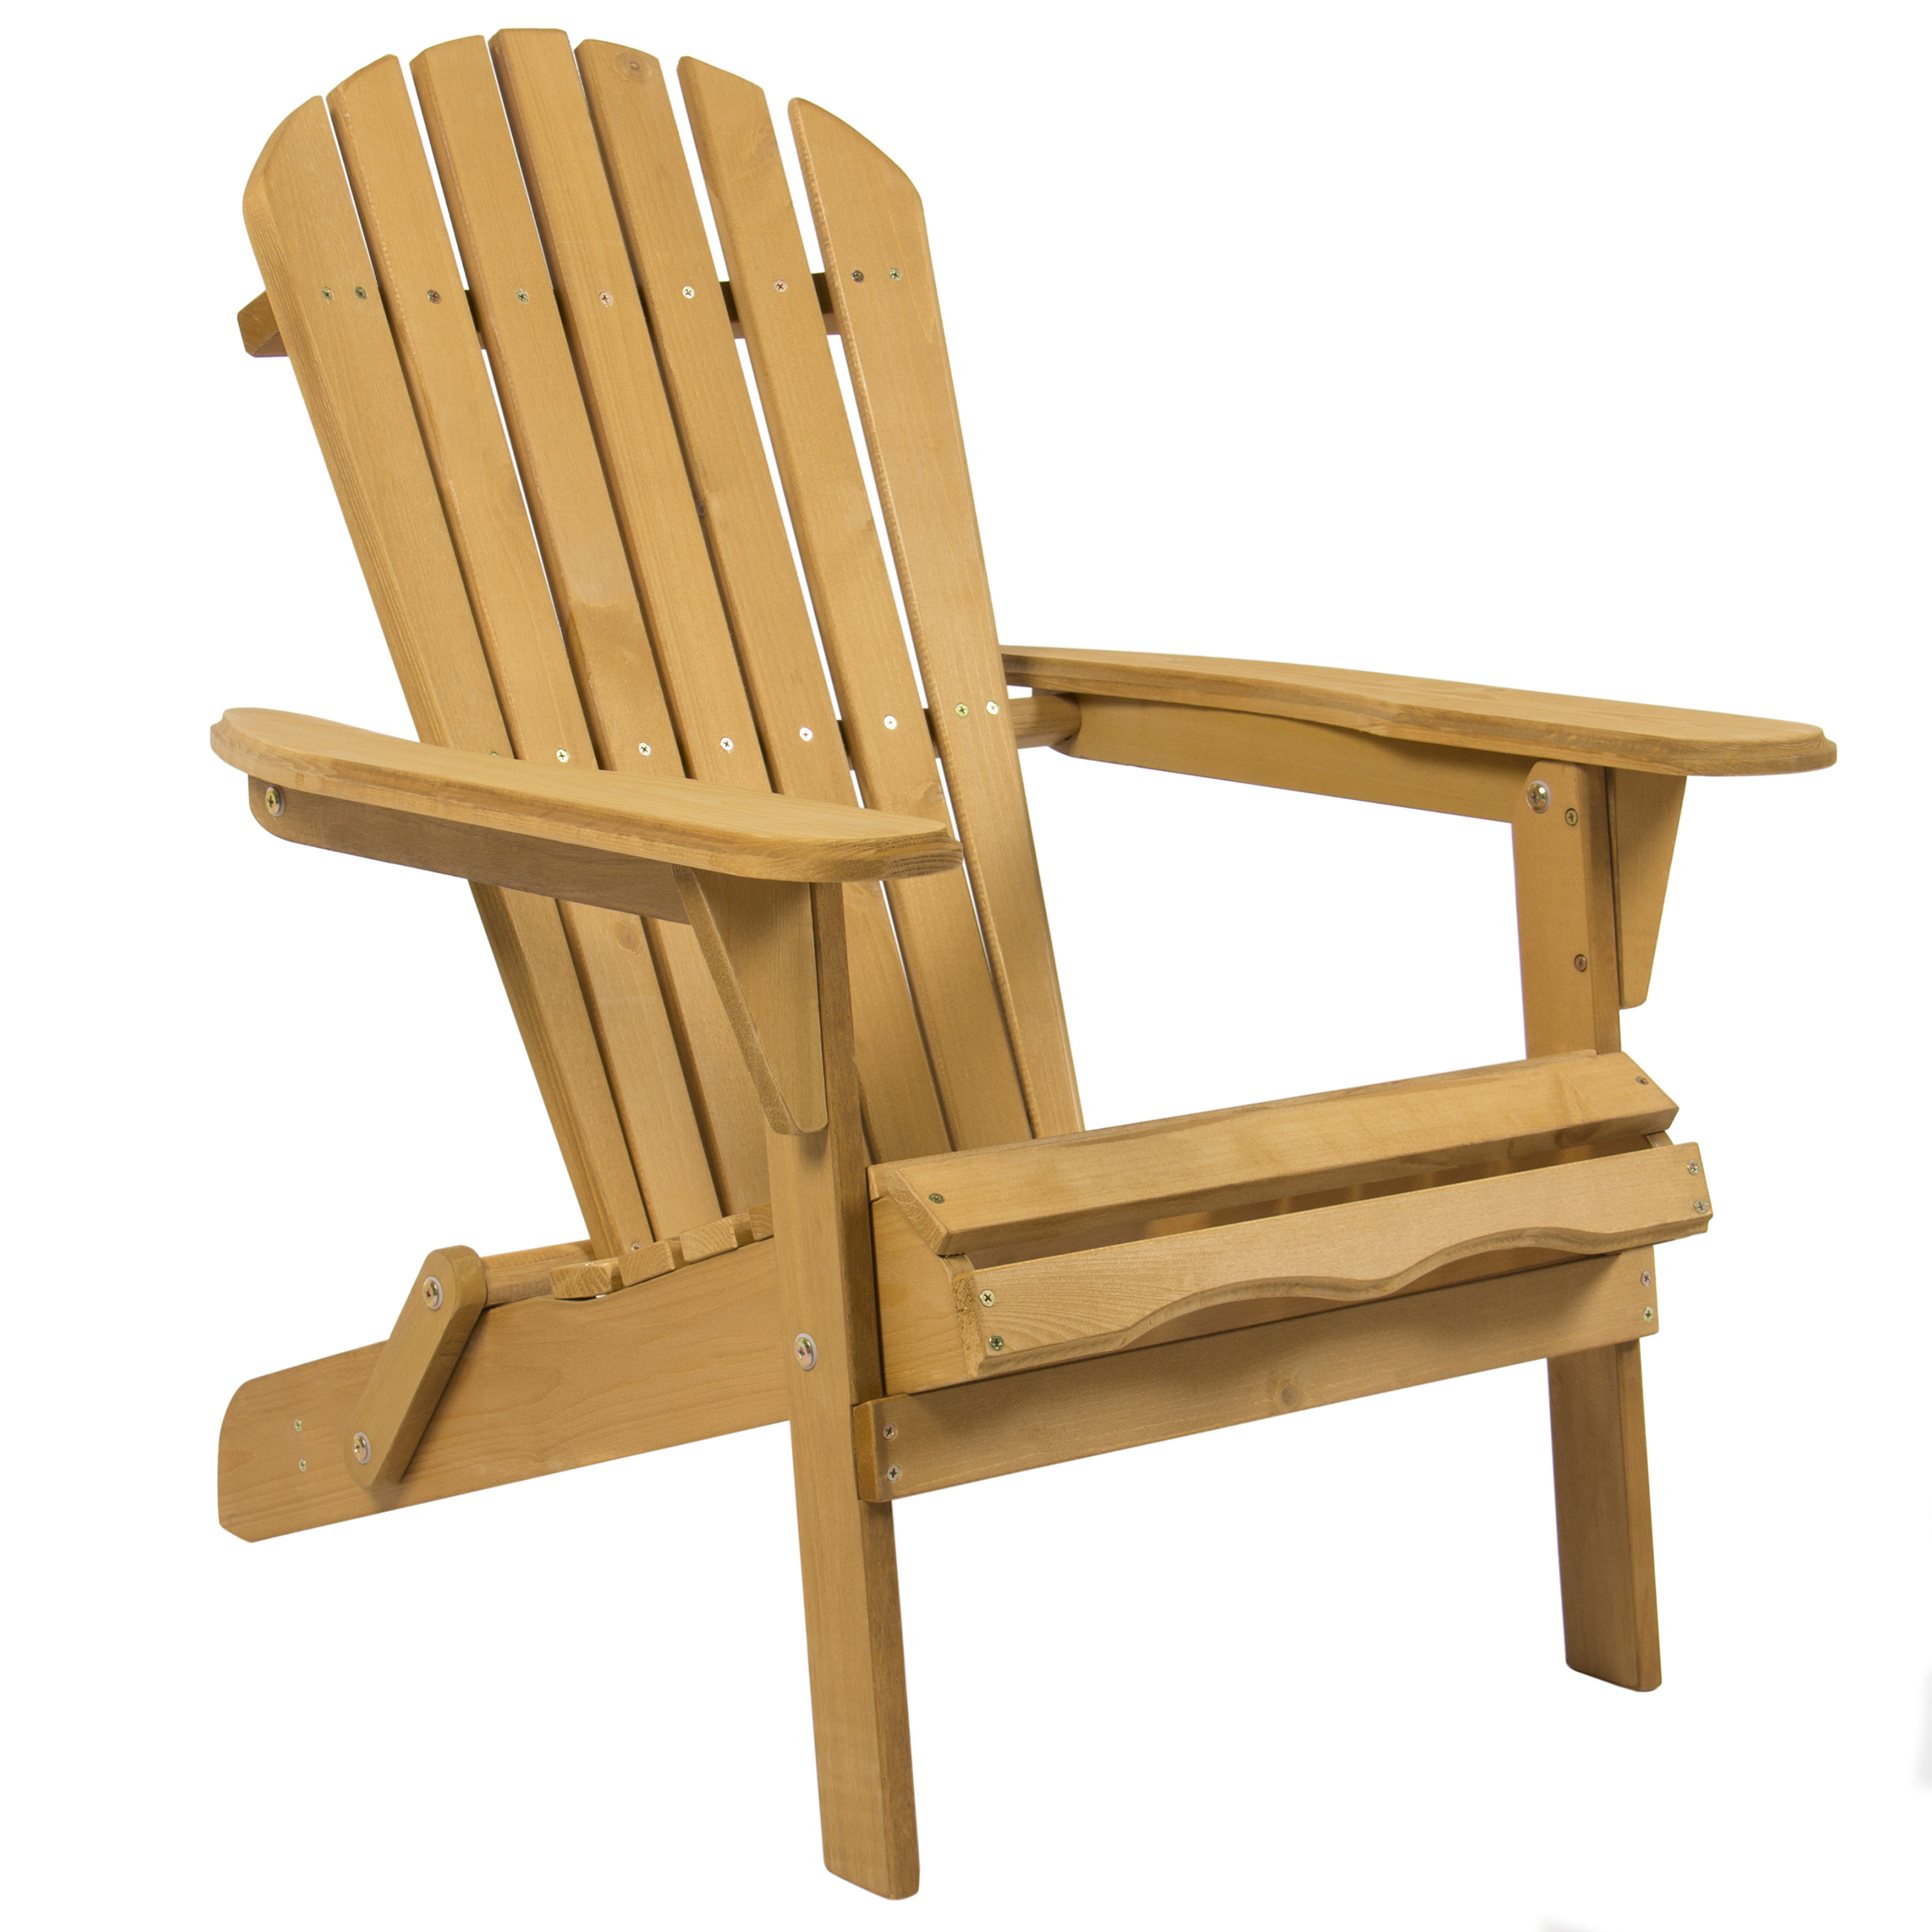 Best Choice Products Outdoor Adirondack Wood Chair Foldable Patio Lawn Deck  Garden Furniture   Walmart.com